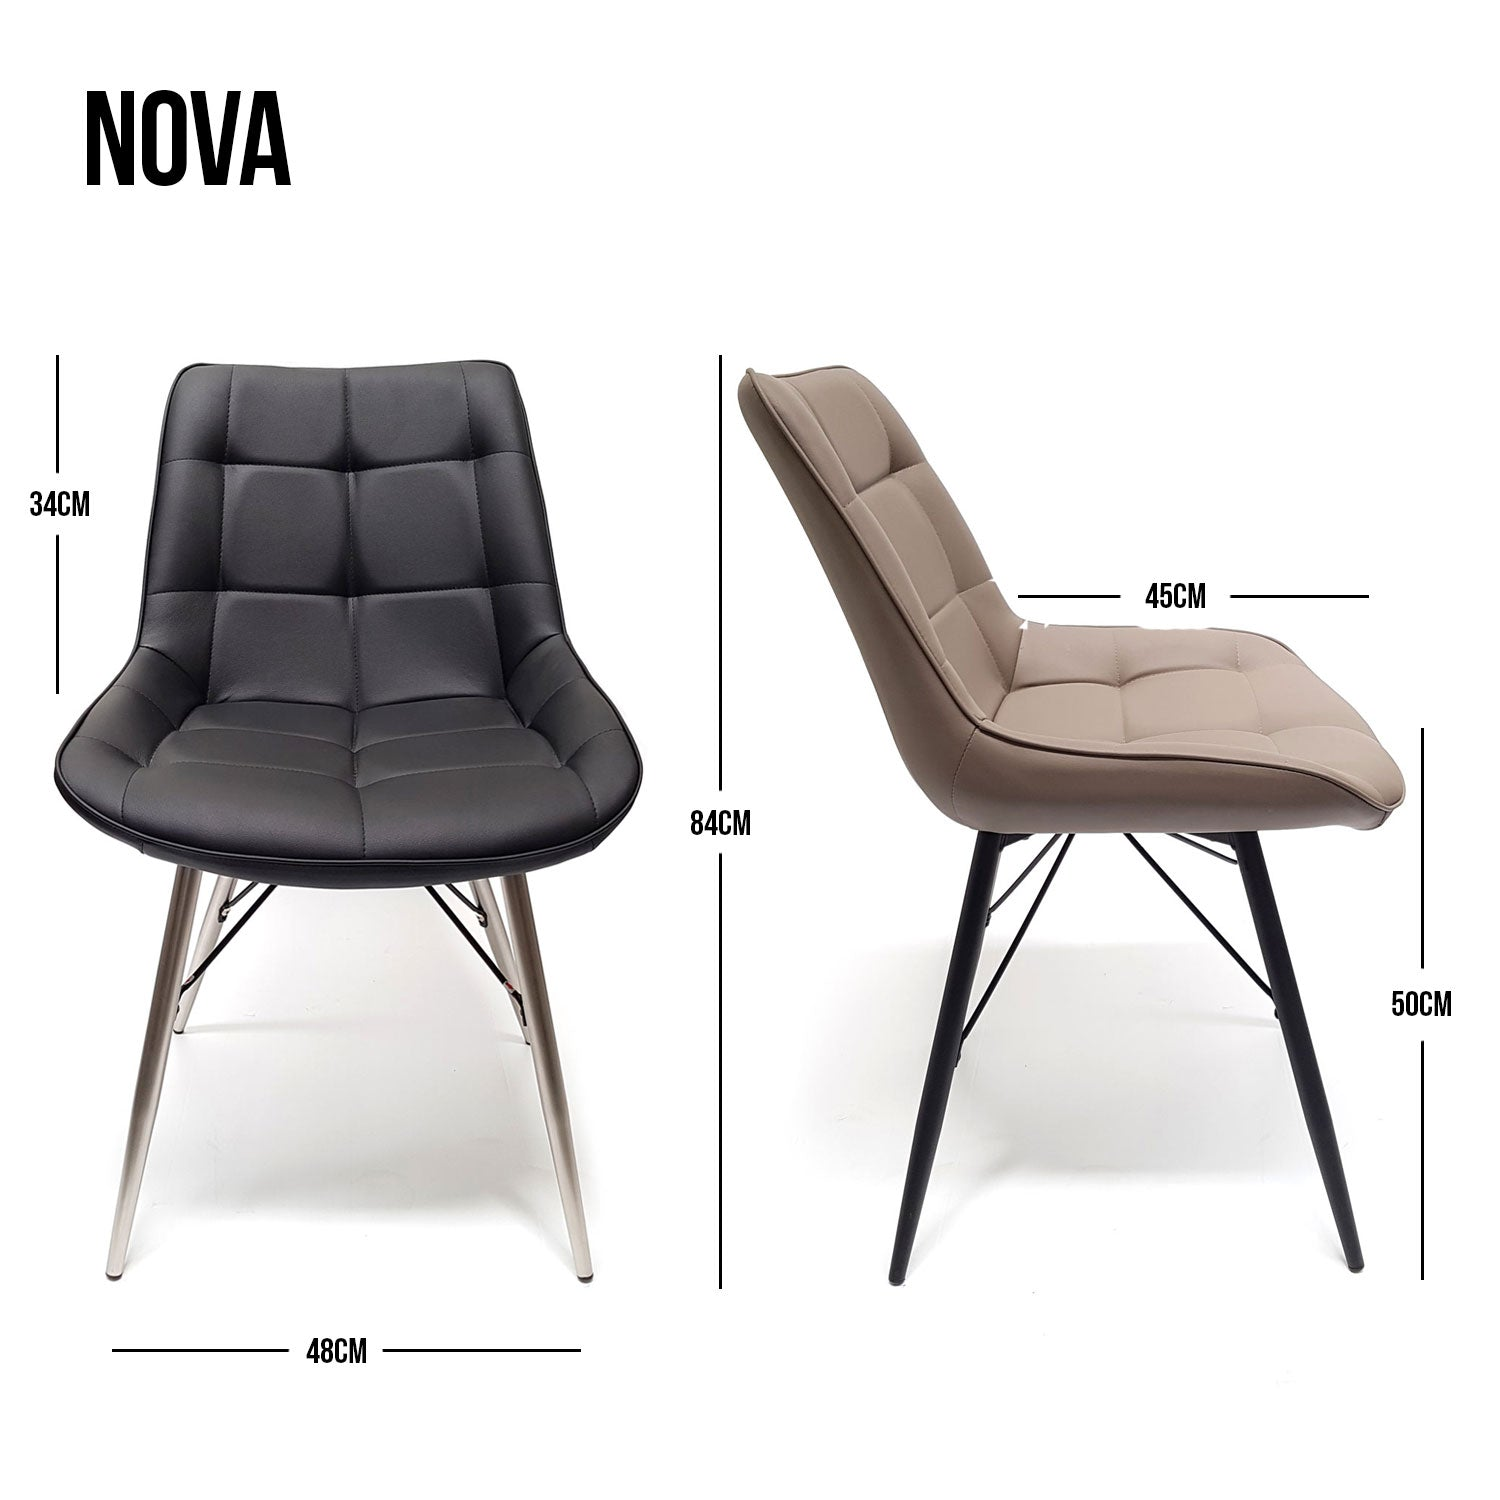 Dining Chair Nova Dining Room Chairs The Furniture Store